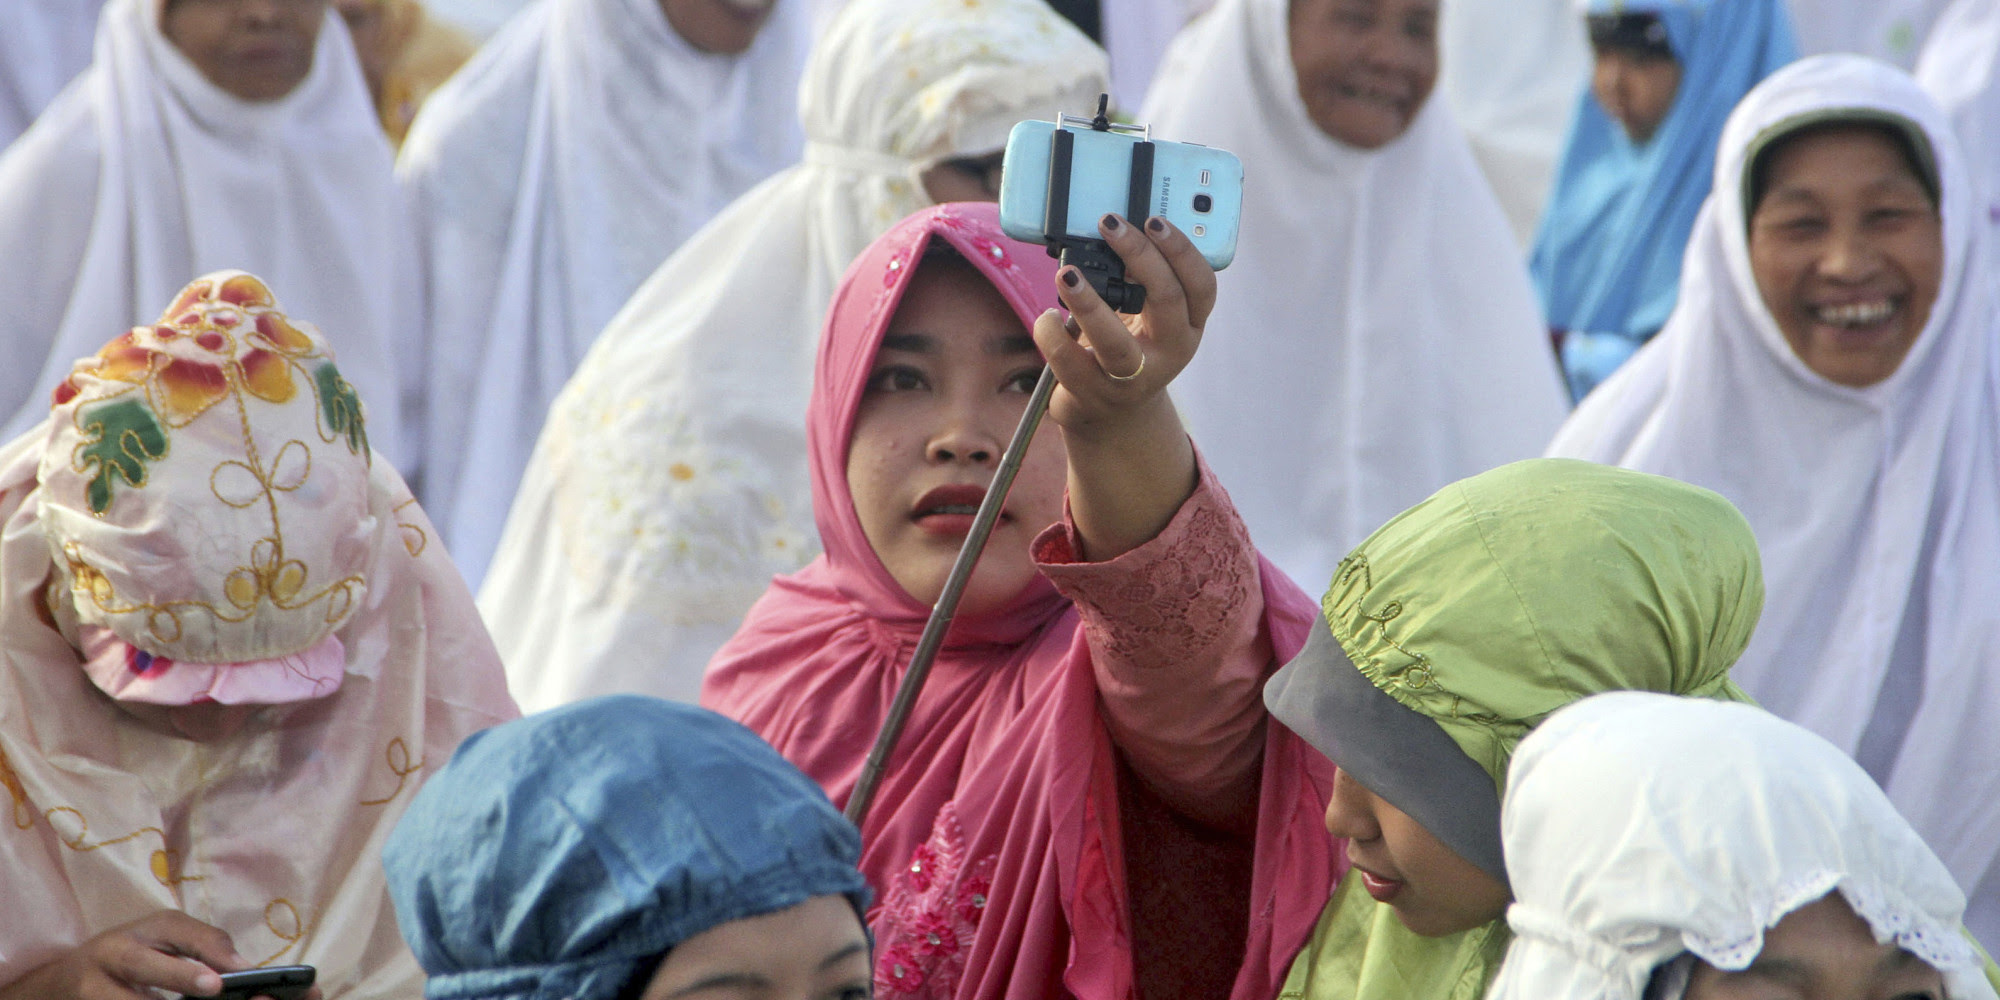 Indonesian Cleric Calls Selfies A Sin. Muslim Youth Respond With More Selfies.  HuffPost